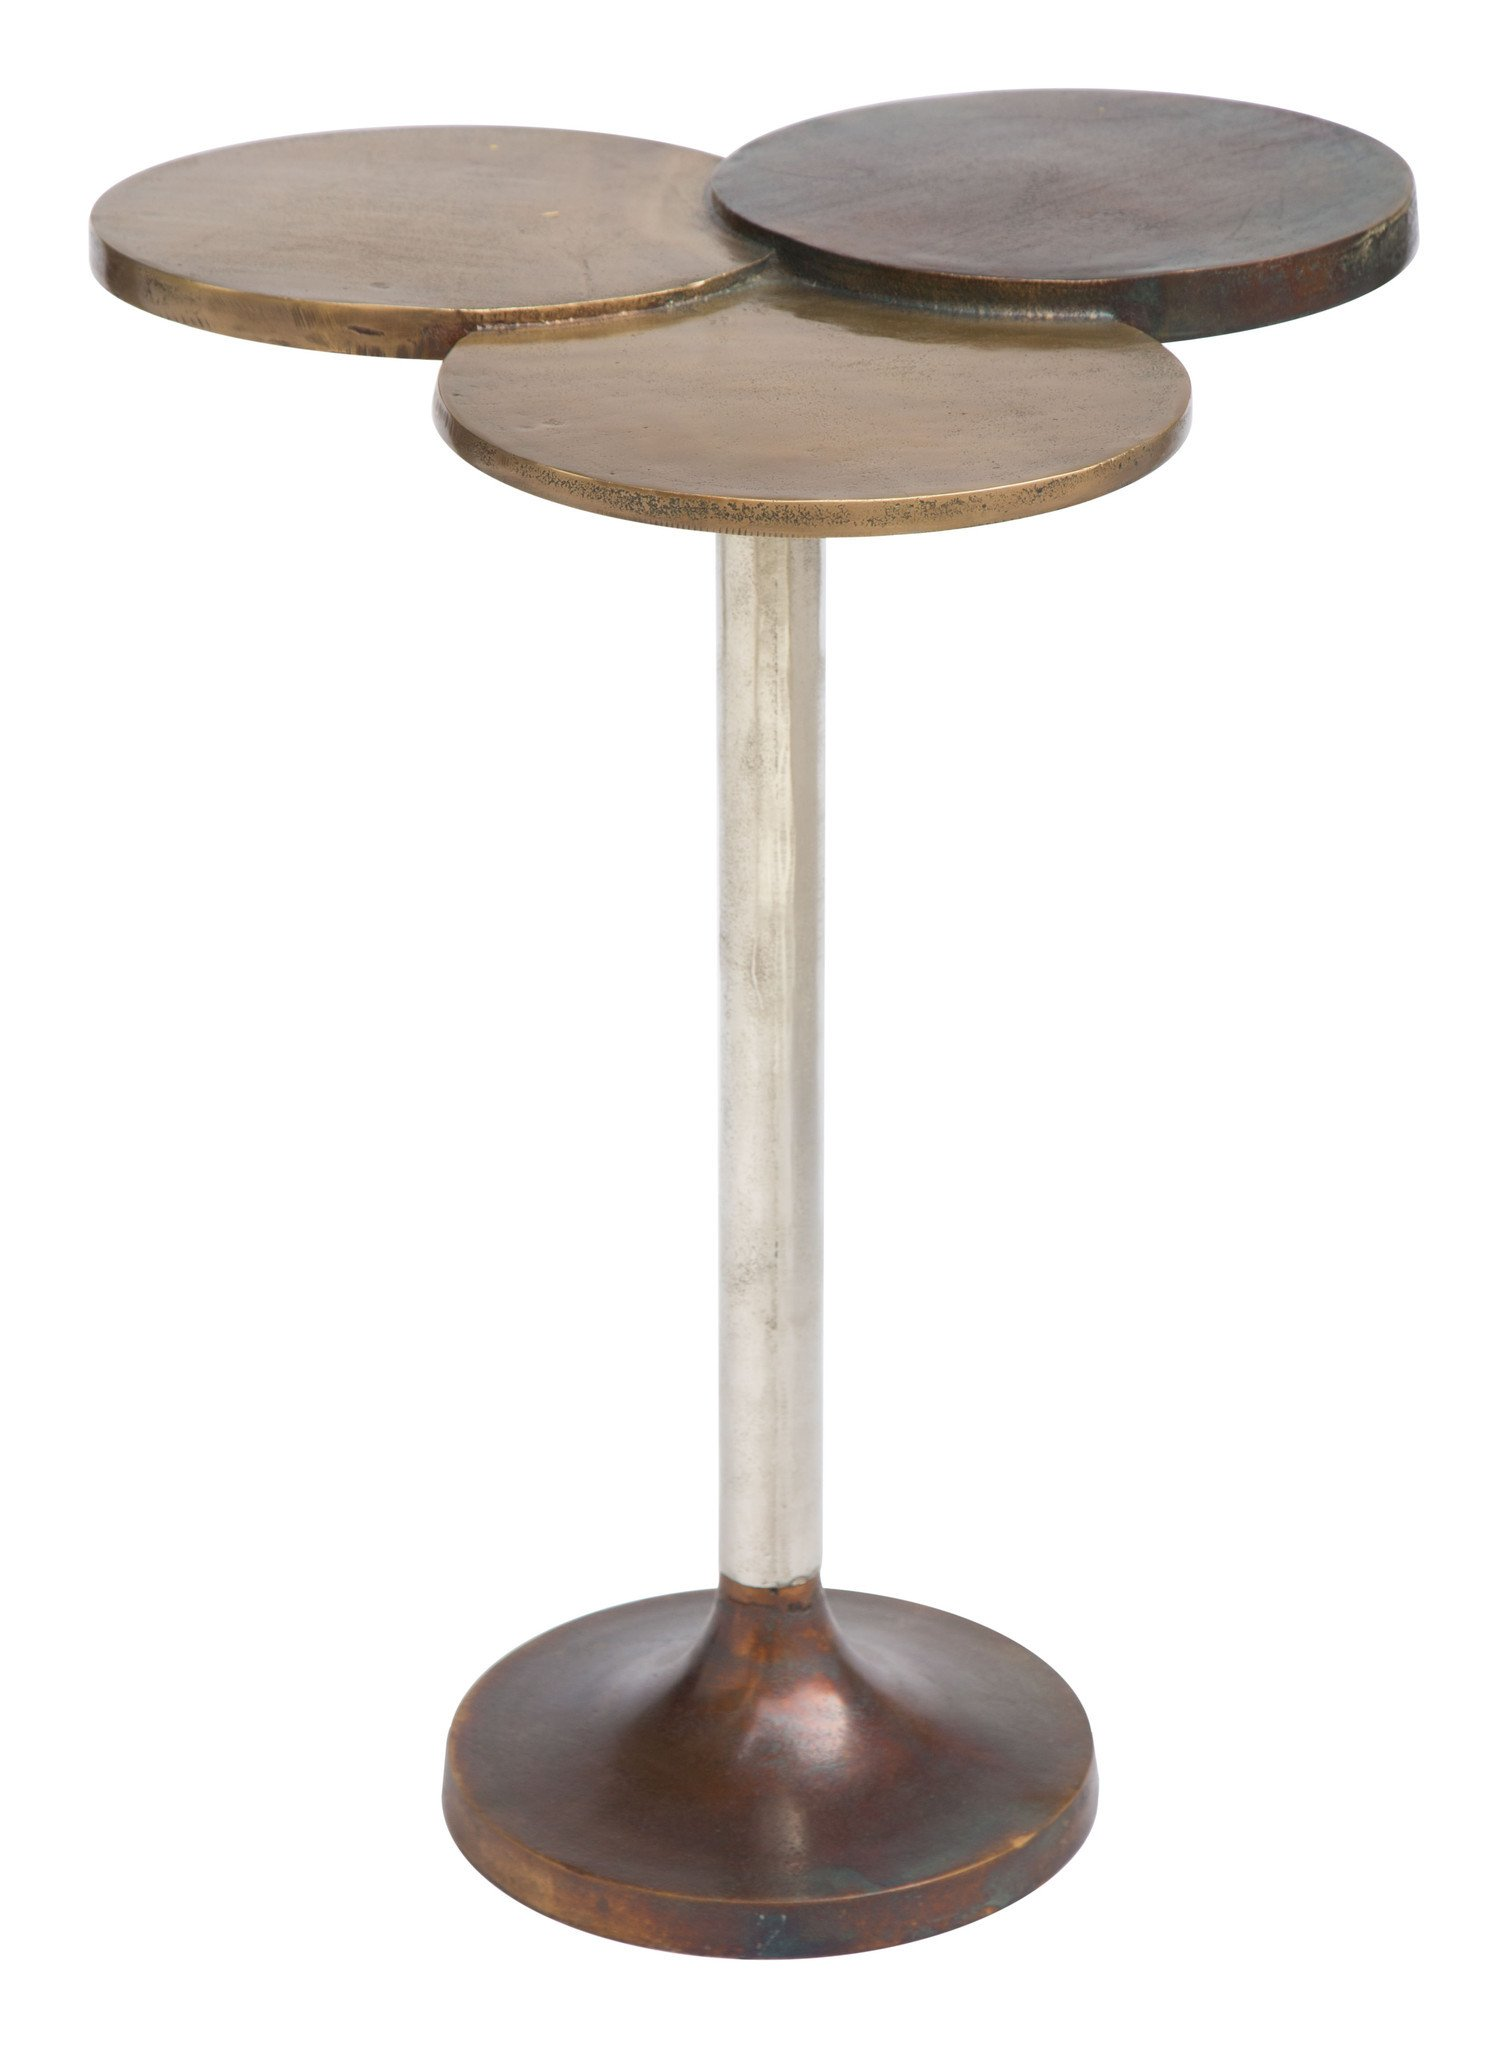 dundee accent table antique brass raw nickel blue side tables alan decor white hairpin legs gray end target round wood kitchen mirrored console wire plastic folding knotty pine